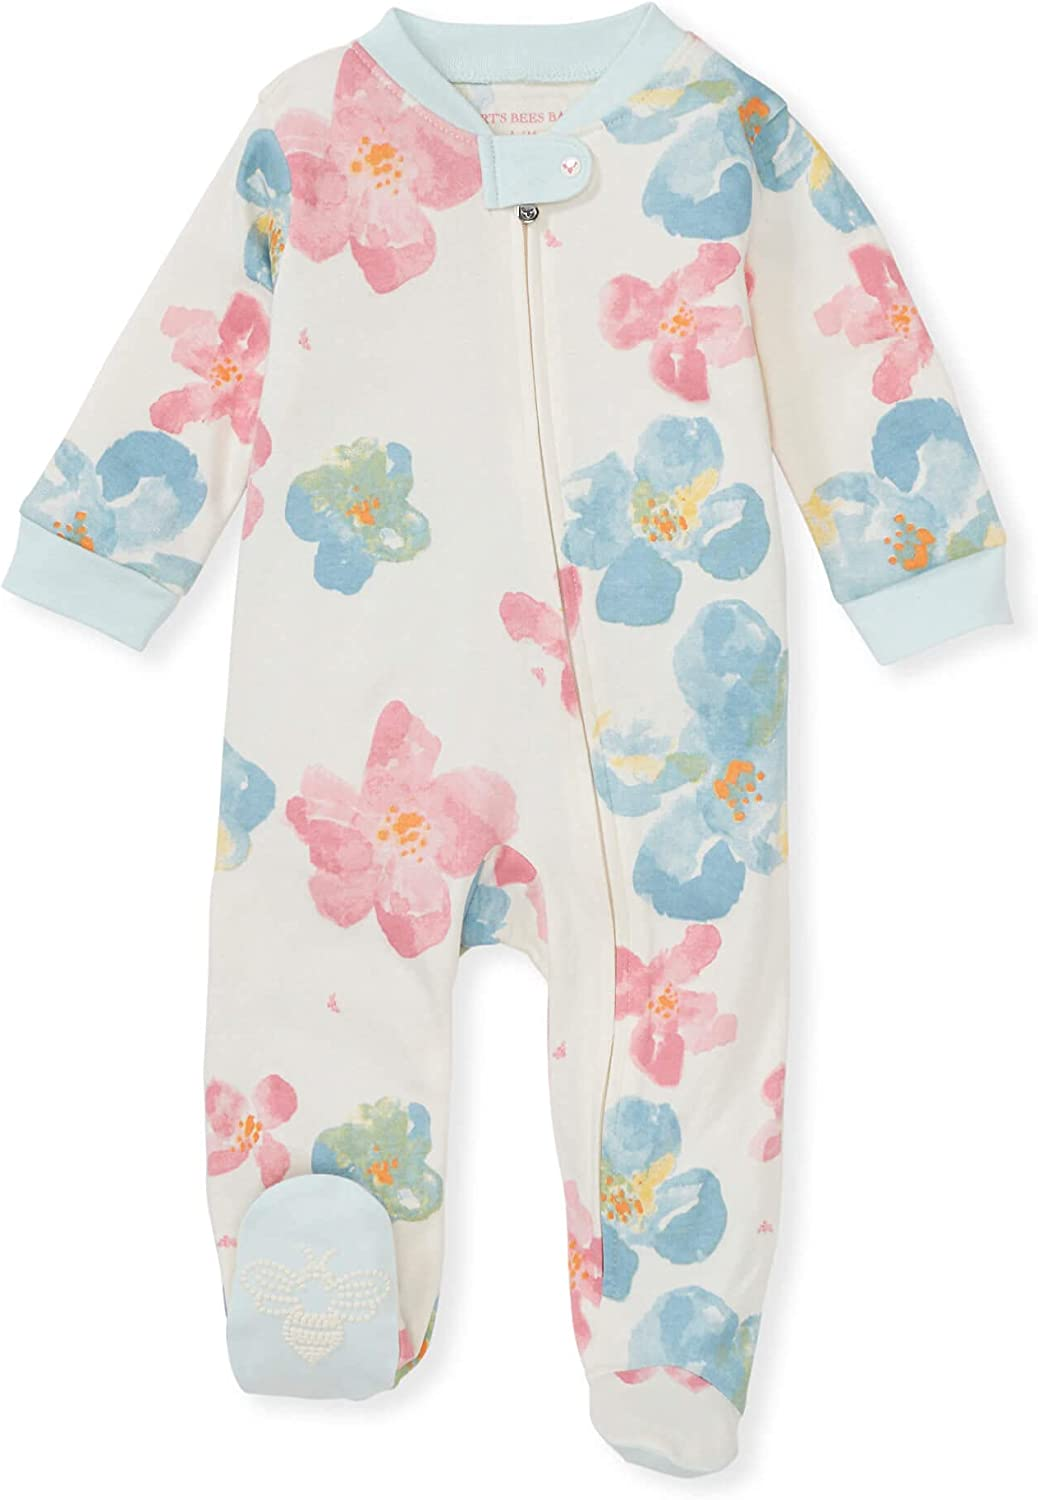 Burt's Bees Baby Baby Girls' Sleep and Play Pjs, 100% Organic Cotton One-Piece Pajamas Zip Front Loose Fit Romper Jumpsuit